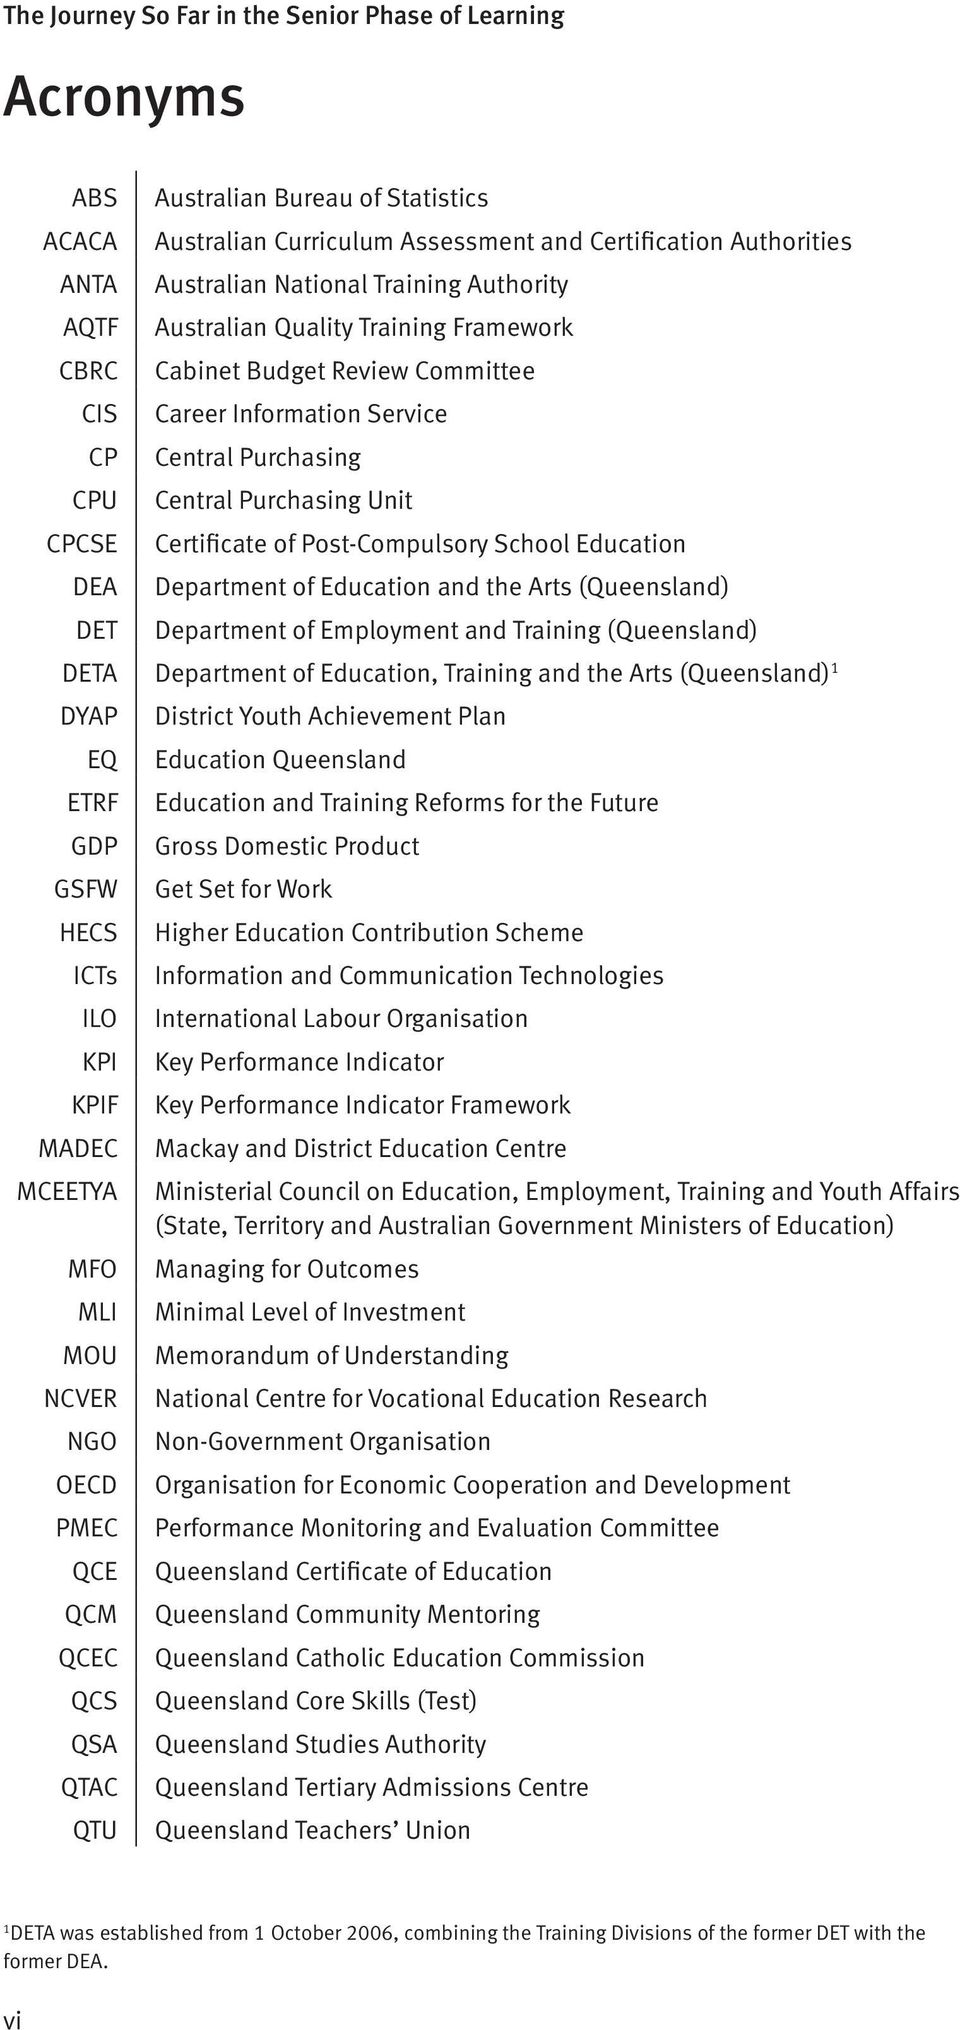 of Education and the Arts (Queensland) Department of Employment and Training (Queensland) DETA Department of Education, Training and the Arts (Queensland) 1 DYAP EQ ETRF GDP GSFW HECS ICTs ILO KPI